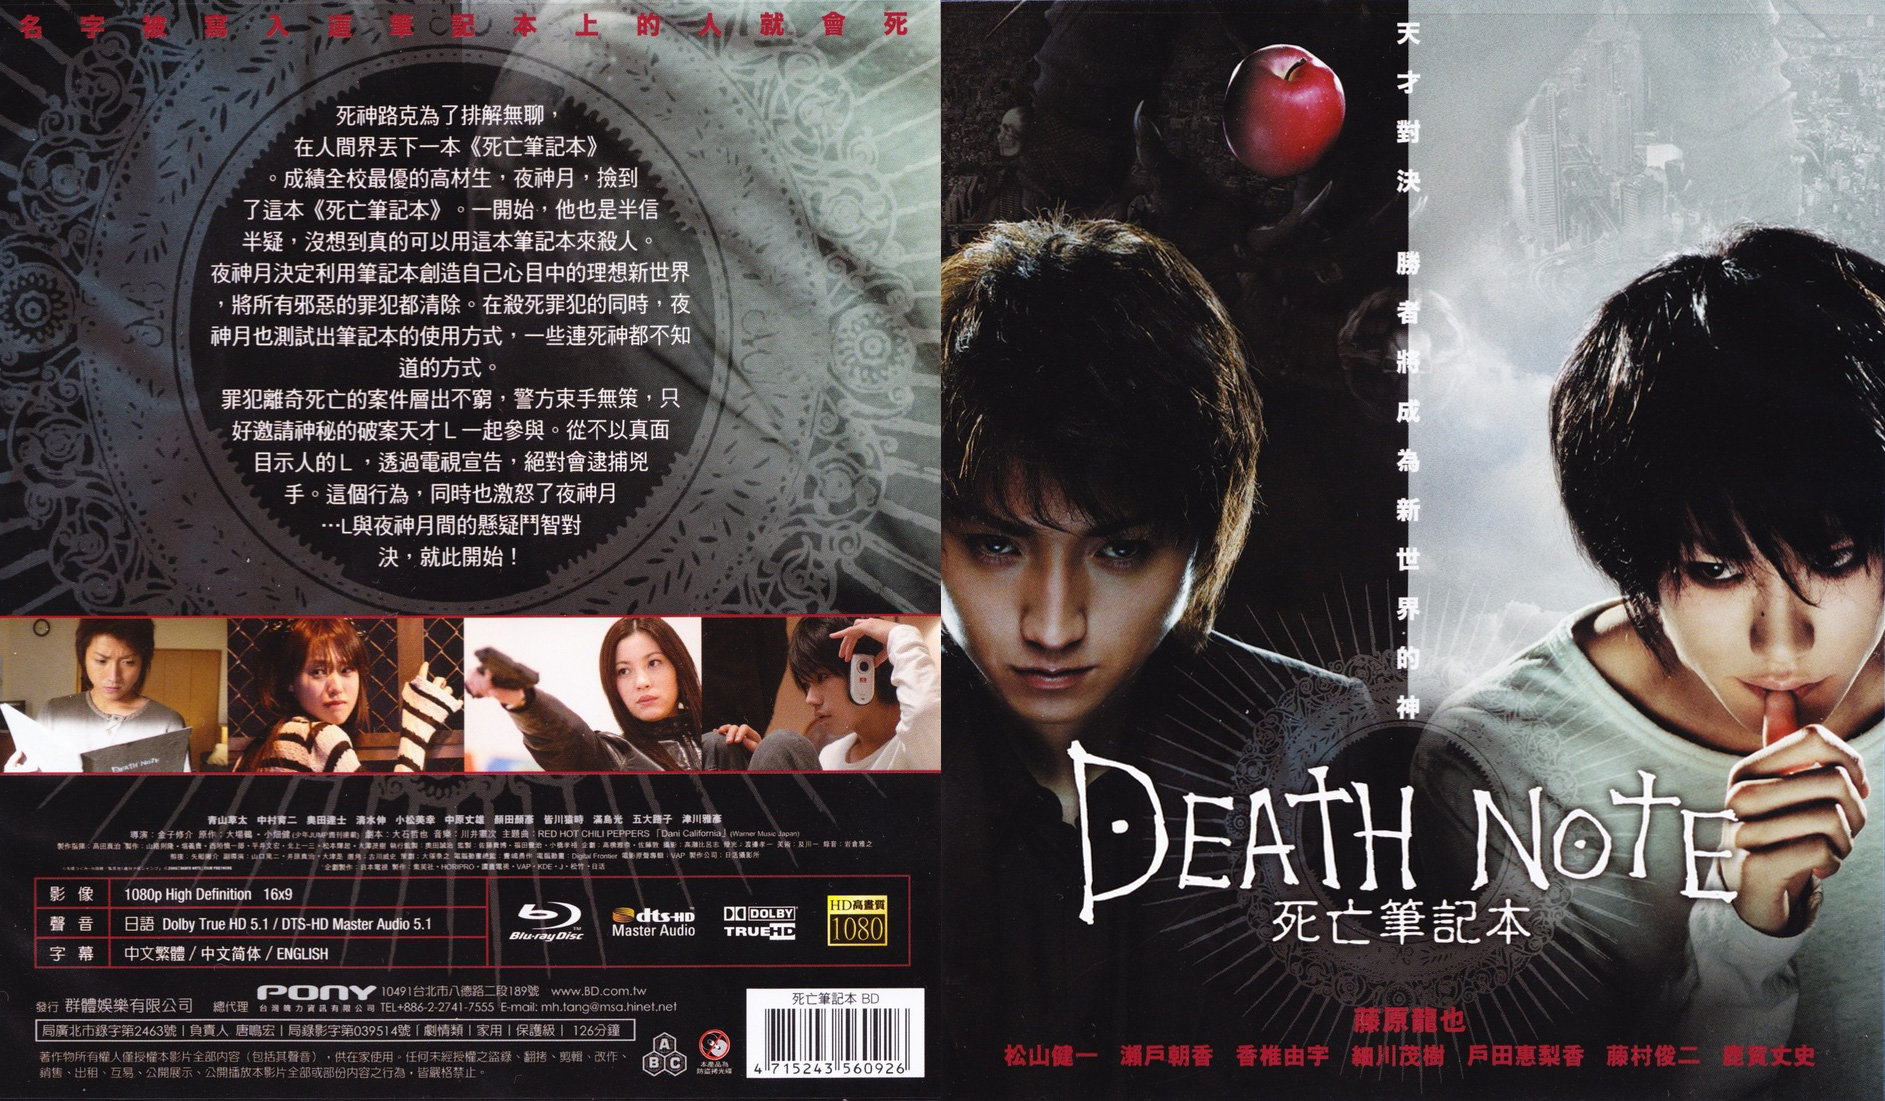 Death Note Blu-ray Disc | AsianBlurayGuide.com